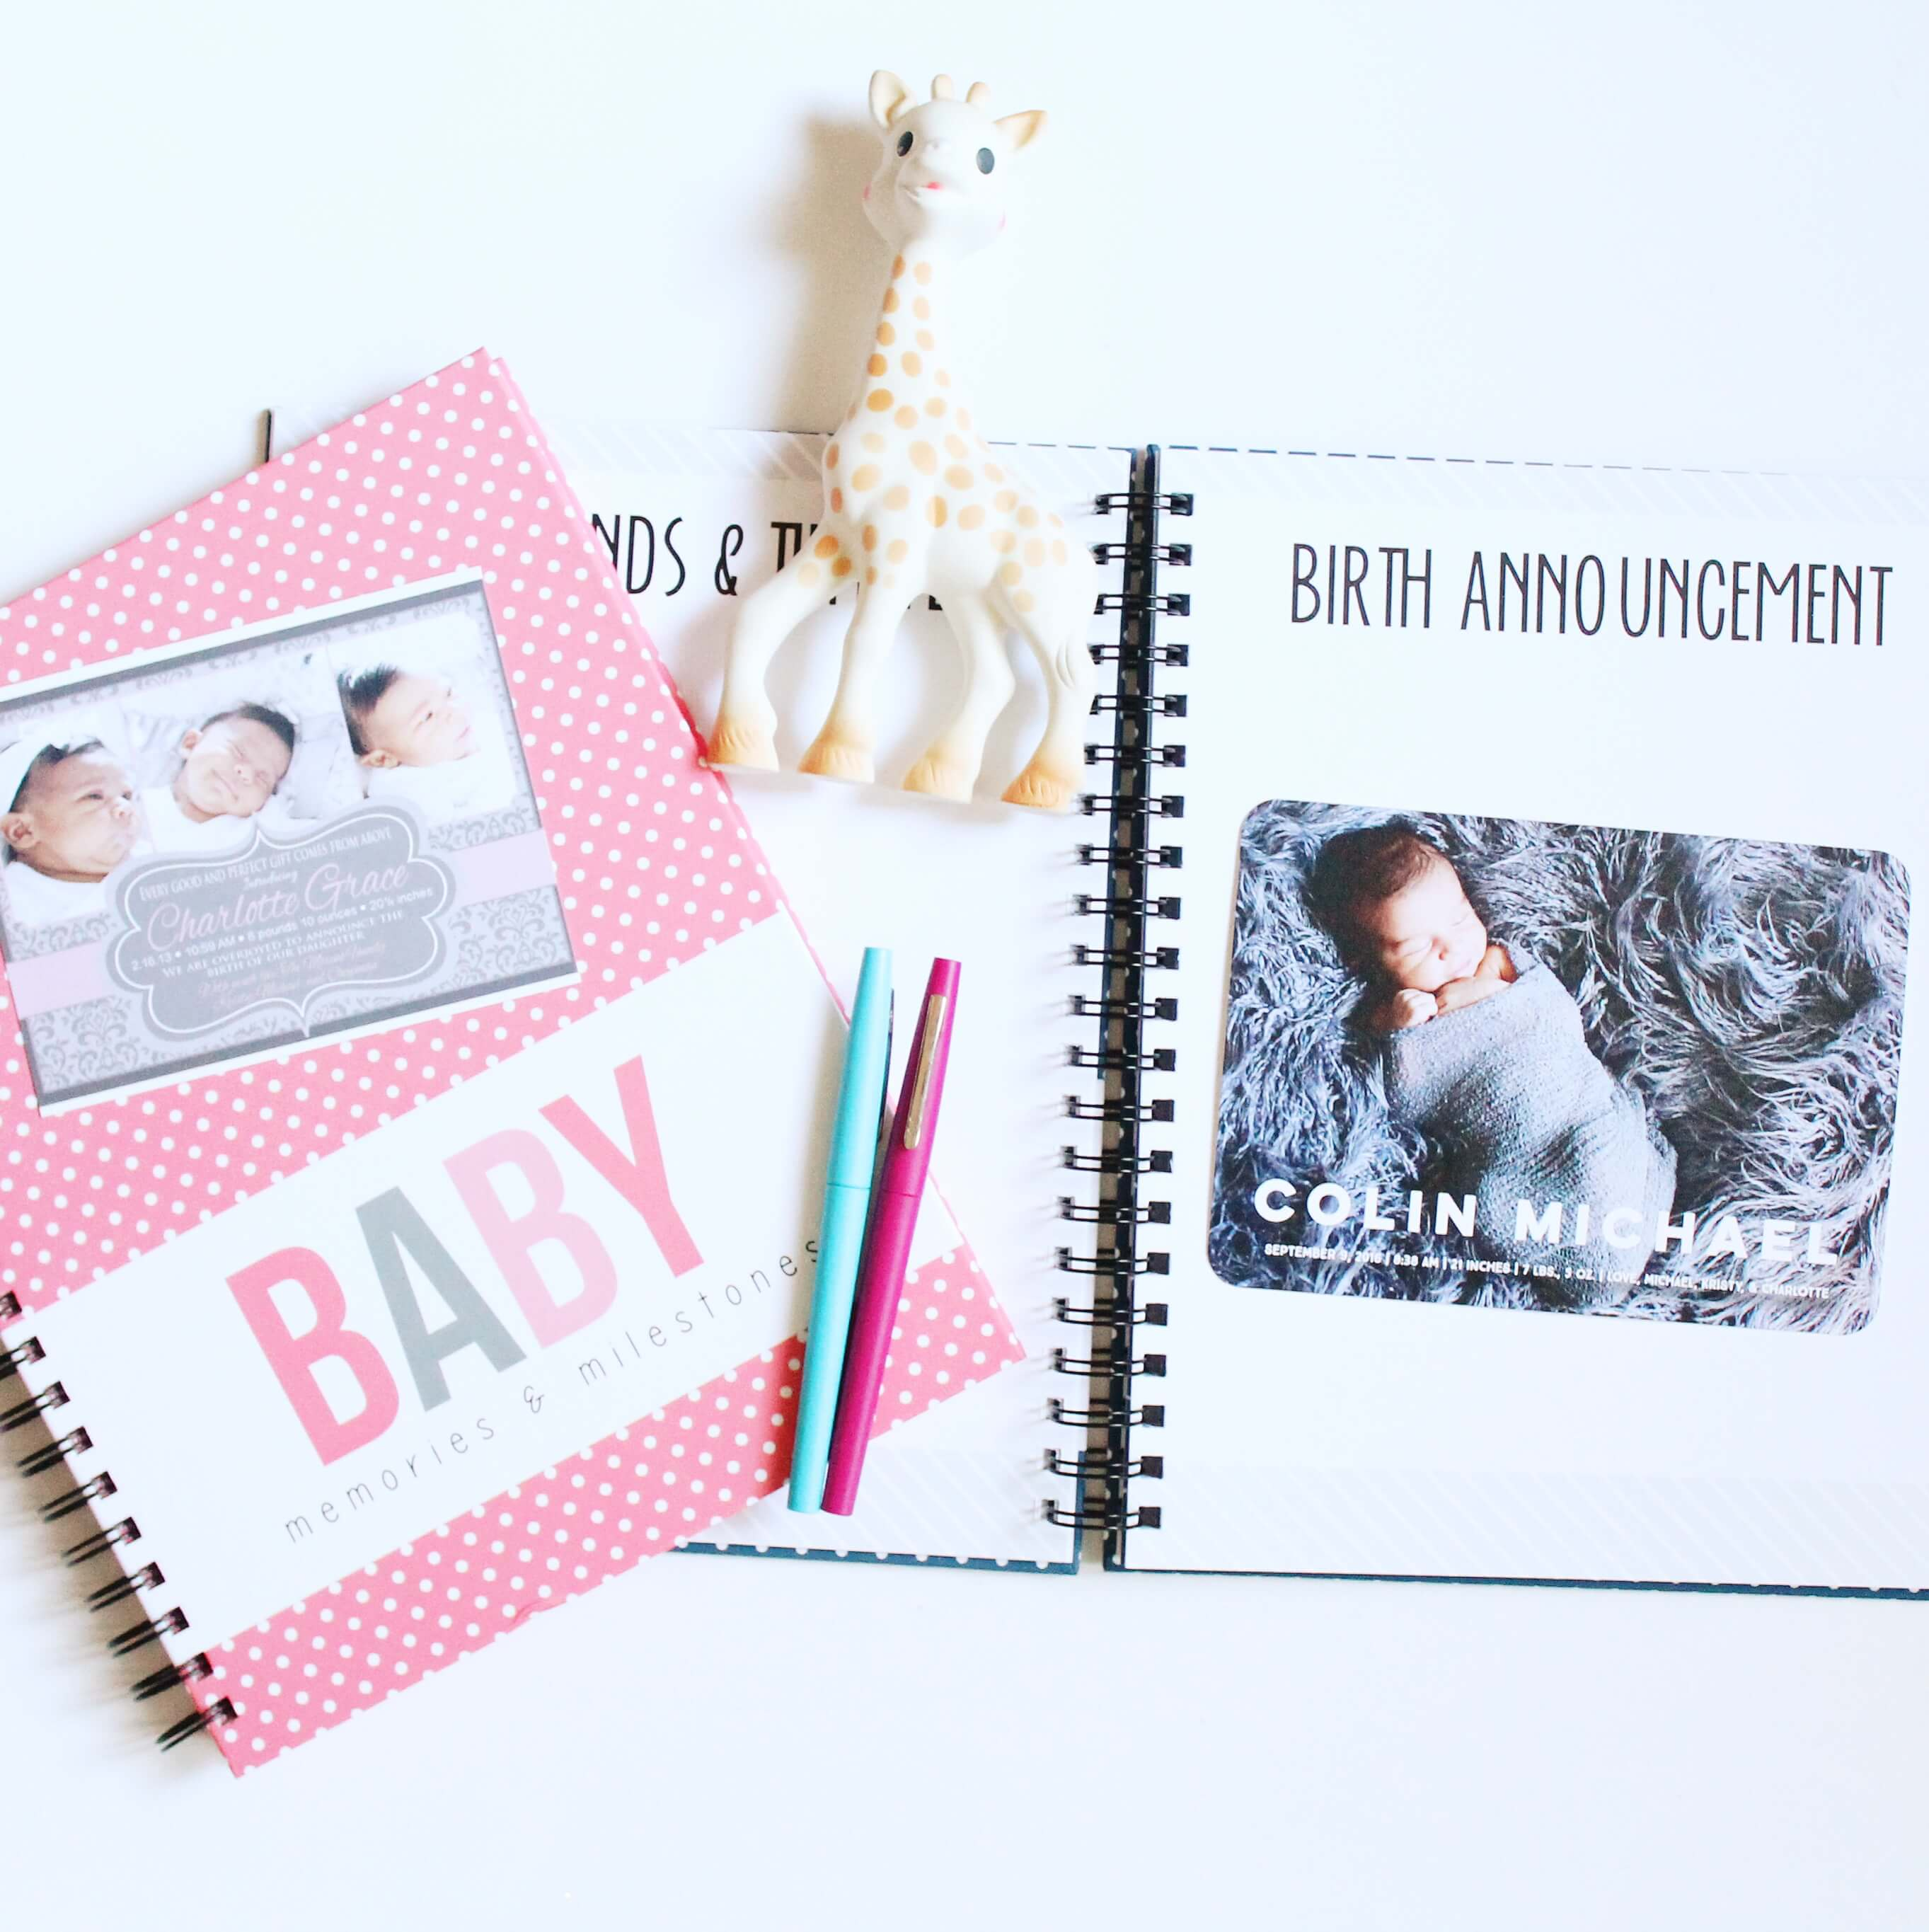 Easy to fill in baby book by Polka Dot Print Shop.